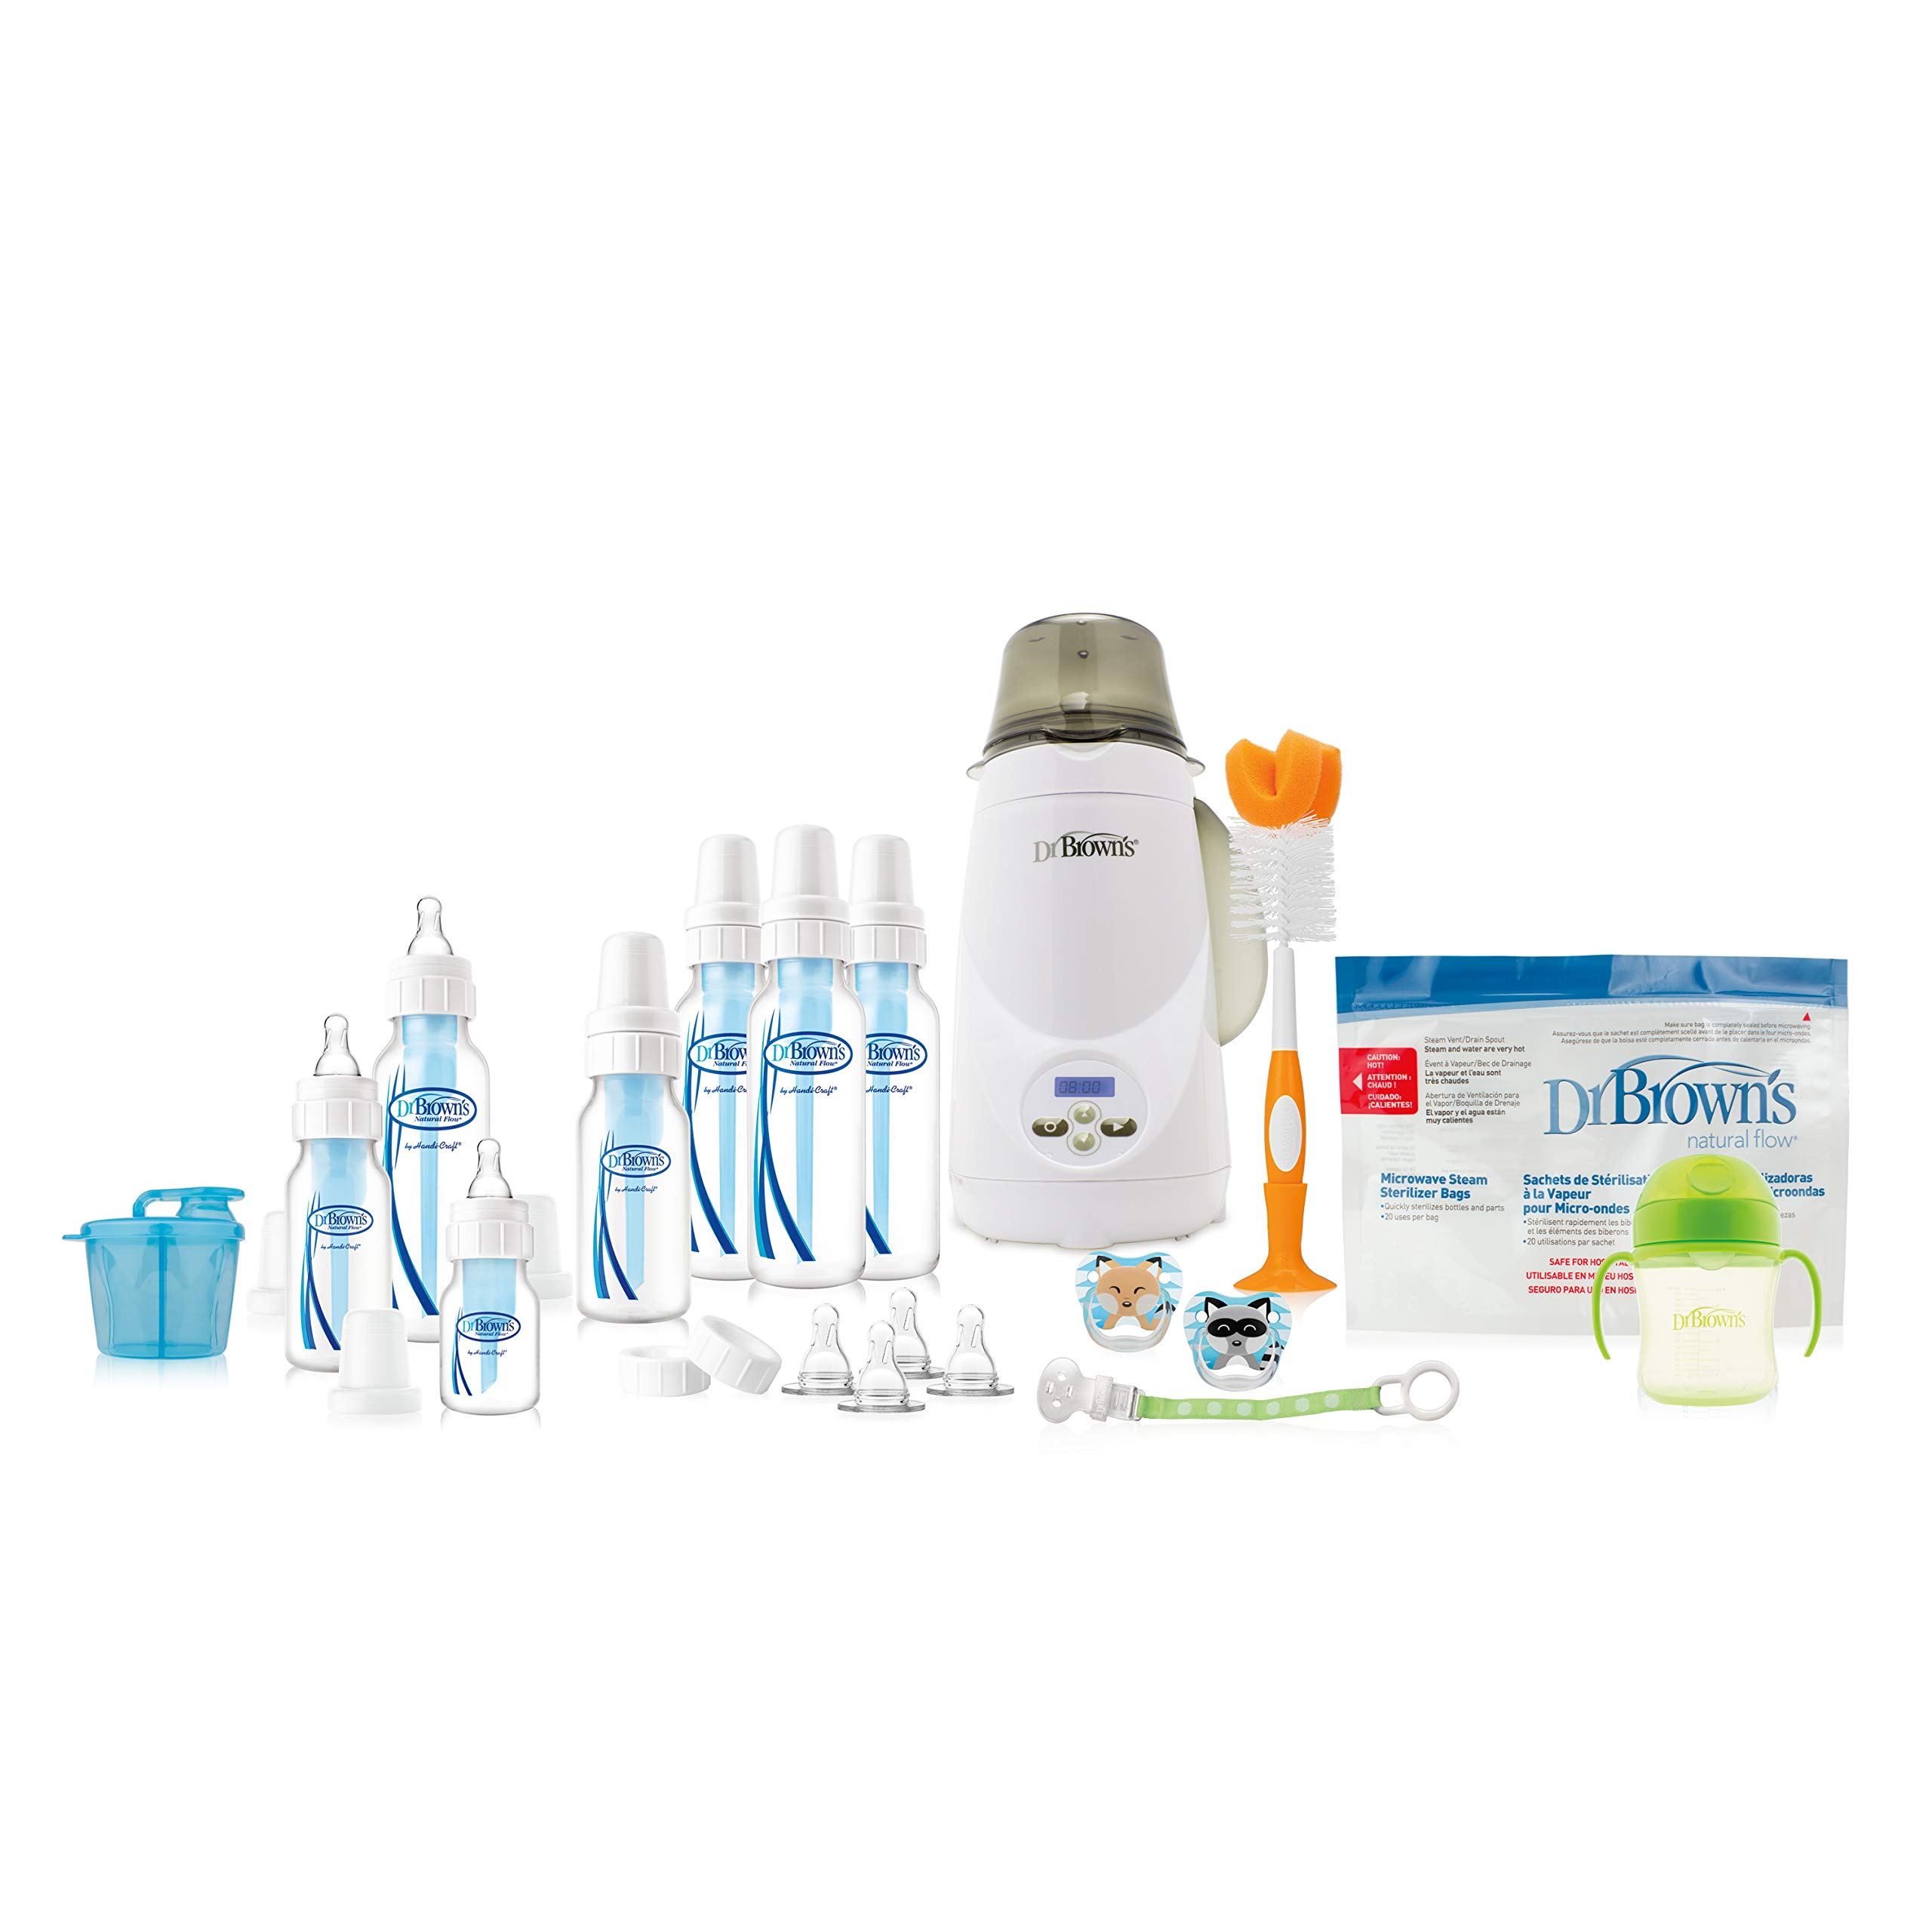 Dr. Brown's Baby Bottles All in One Gift with Deluxe Bottle Warmer by Dr. Brown's